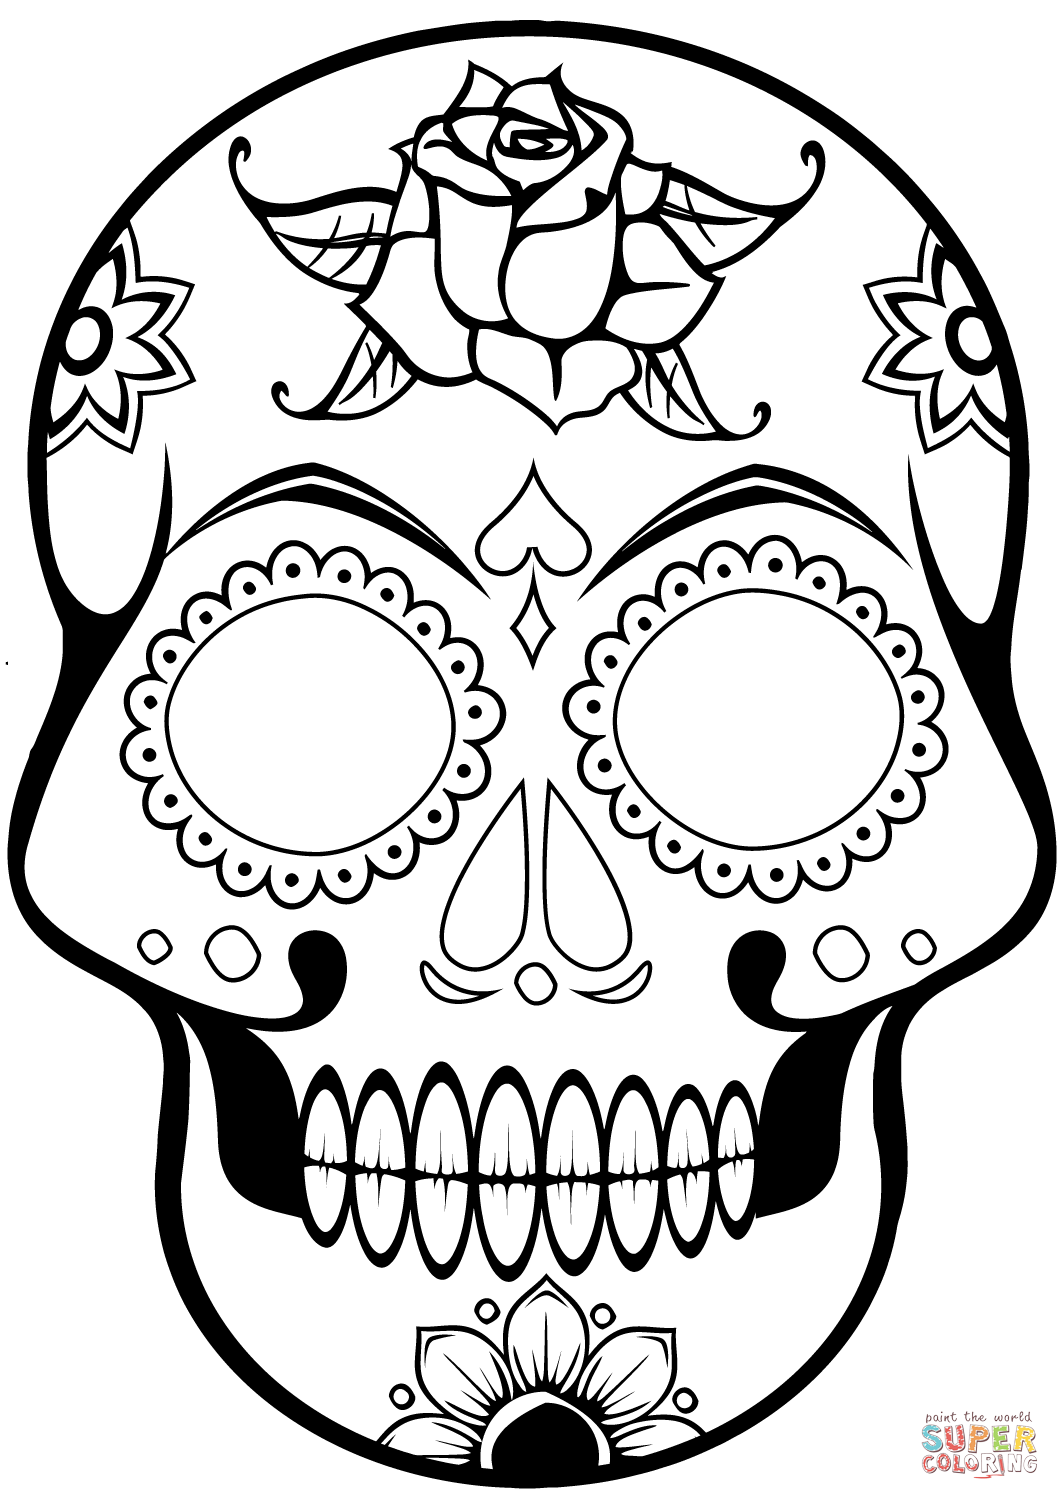 Easy Sugar Skull Coloring Pages - Worksheet & Coloring Pages